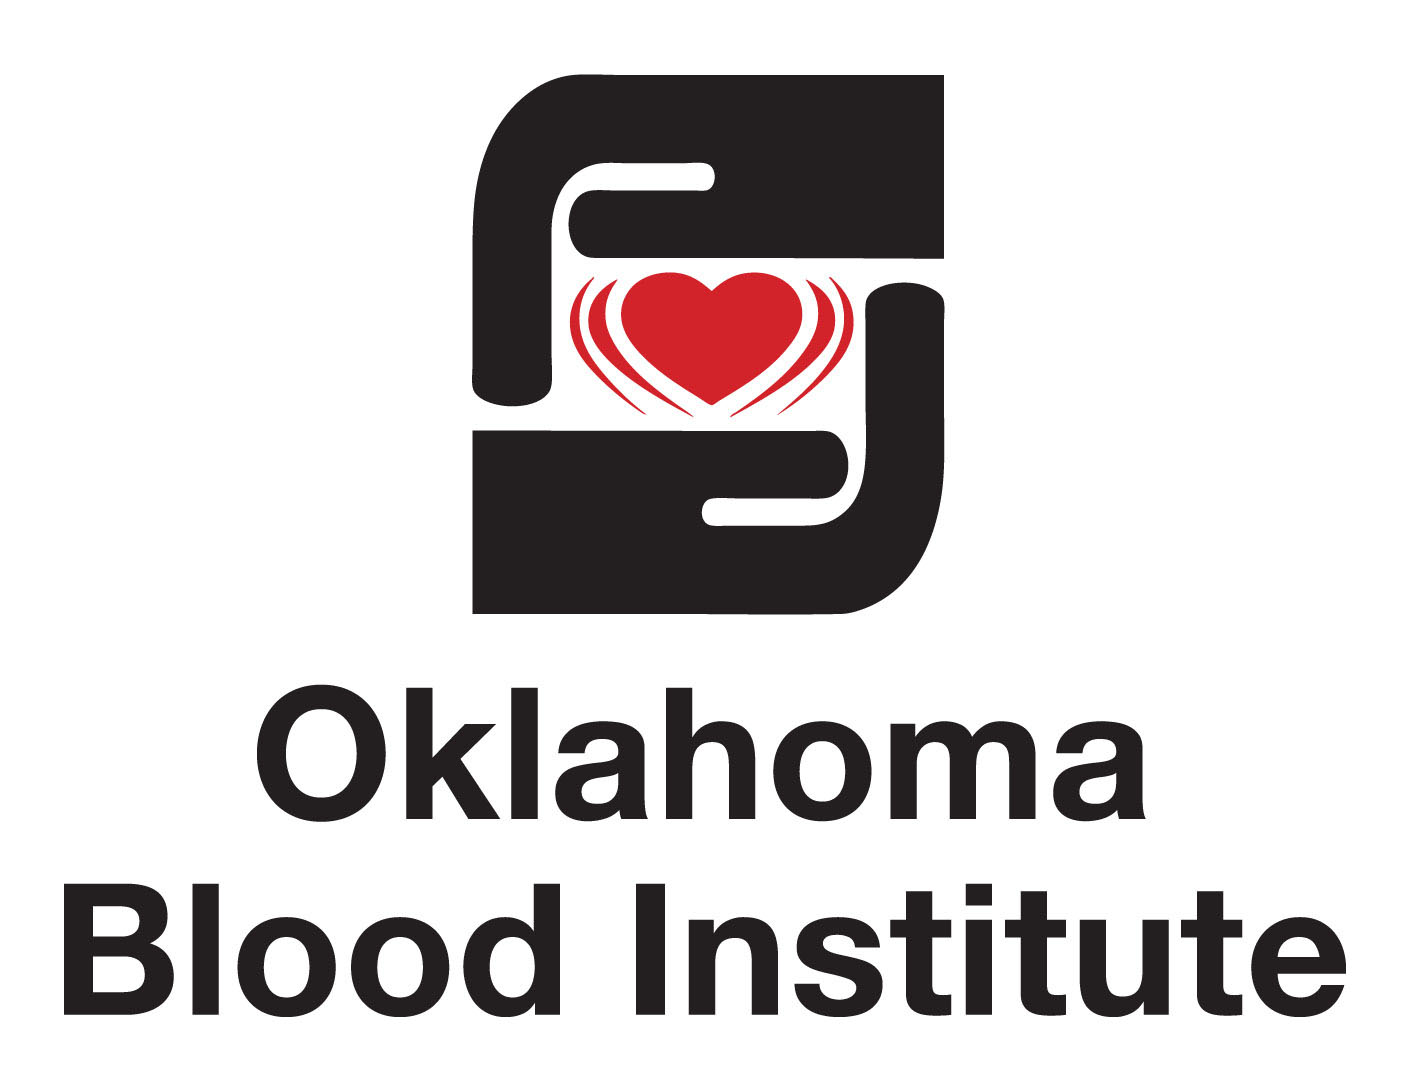 Oklahoma Blood Institute Logo